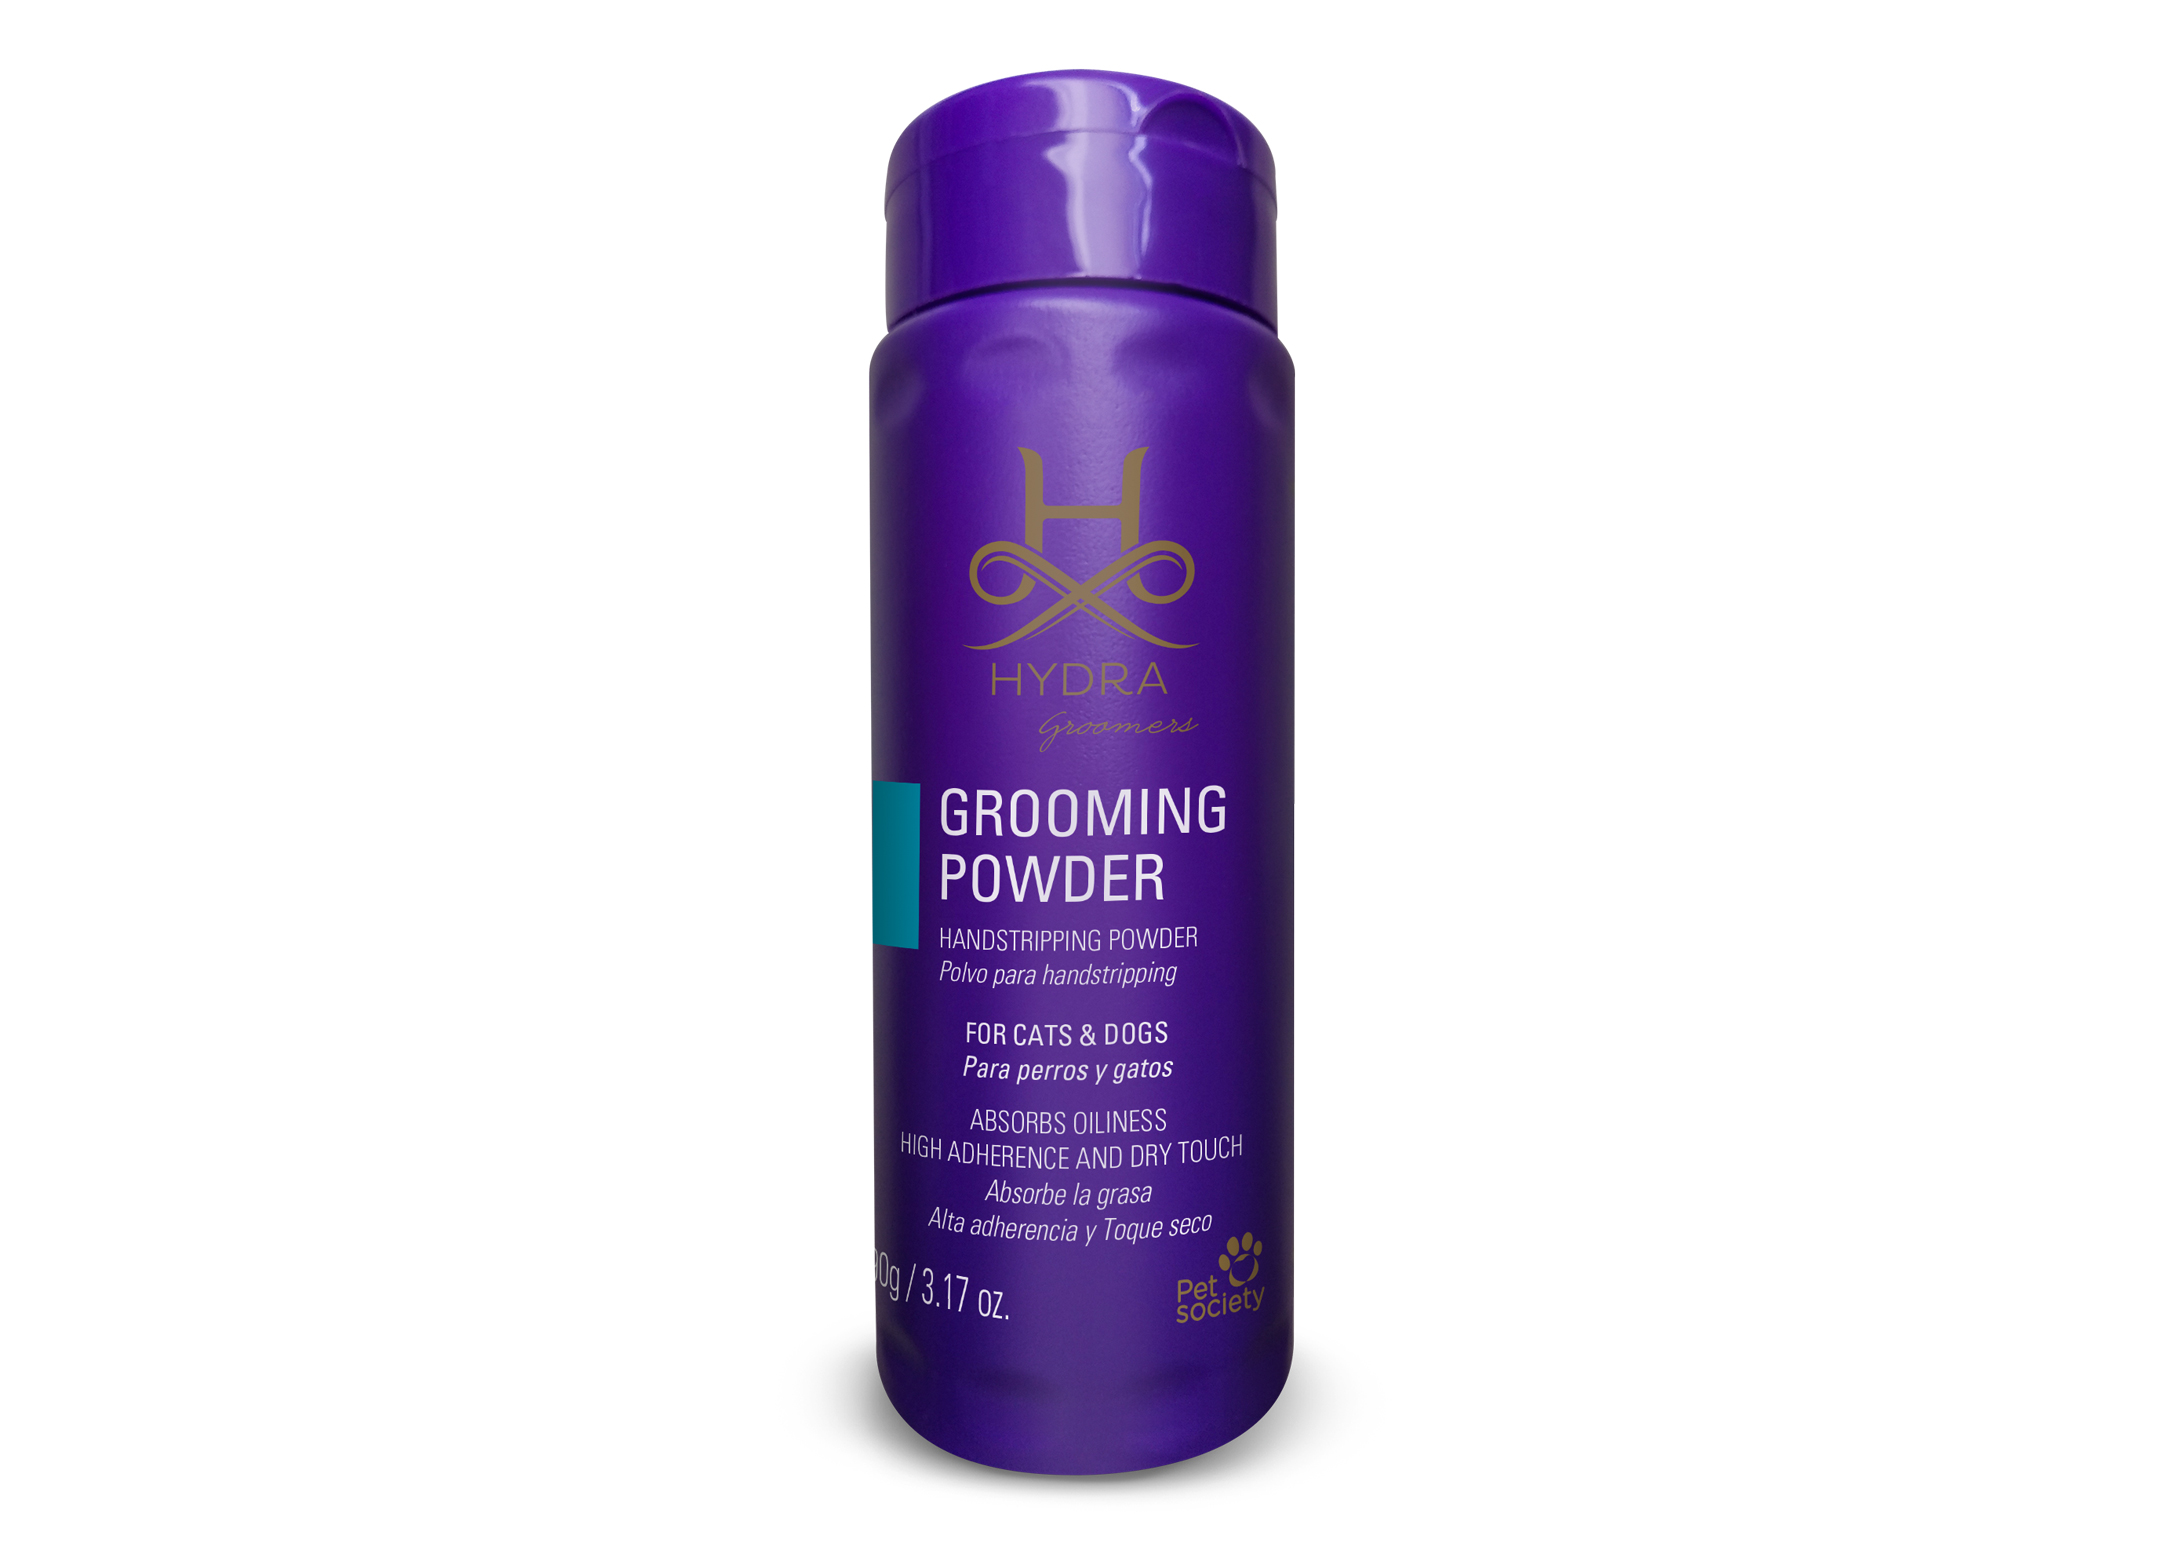 Hydra Groomers Grooming Powder 90g Poudre de Toilettage